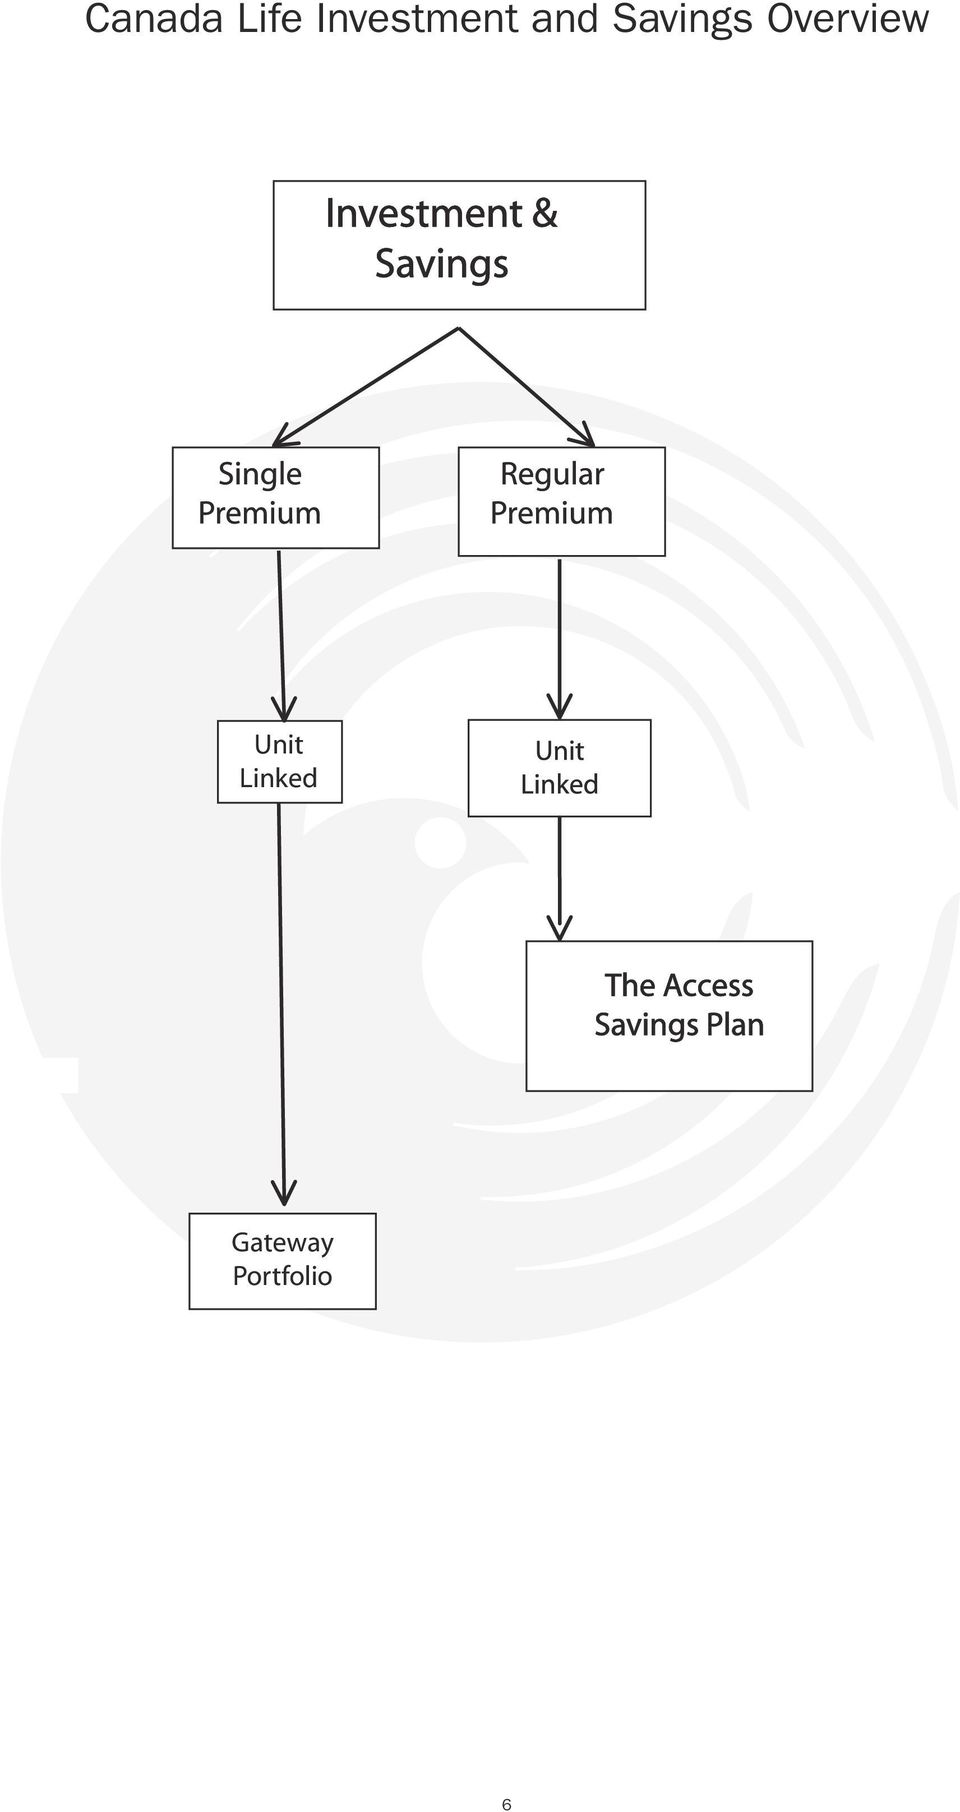 Savings Overview